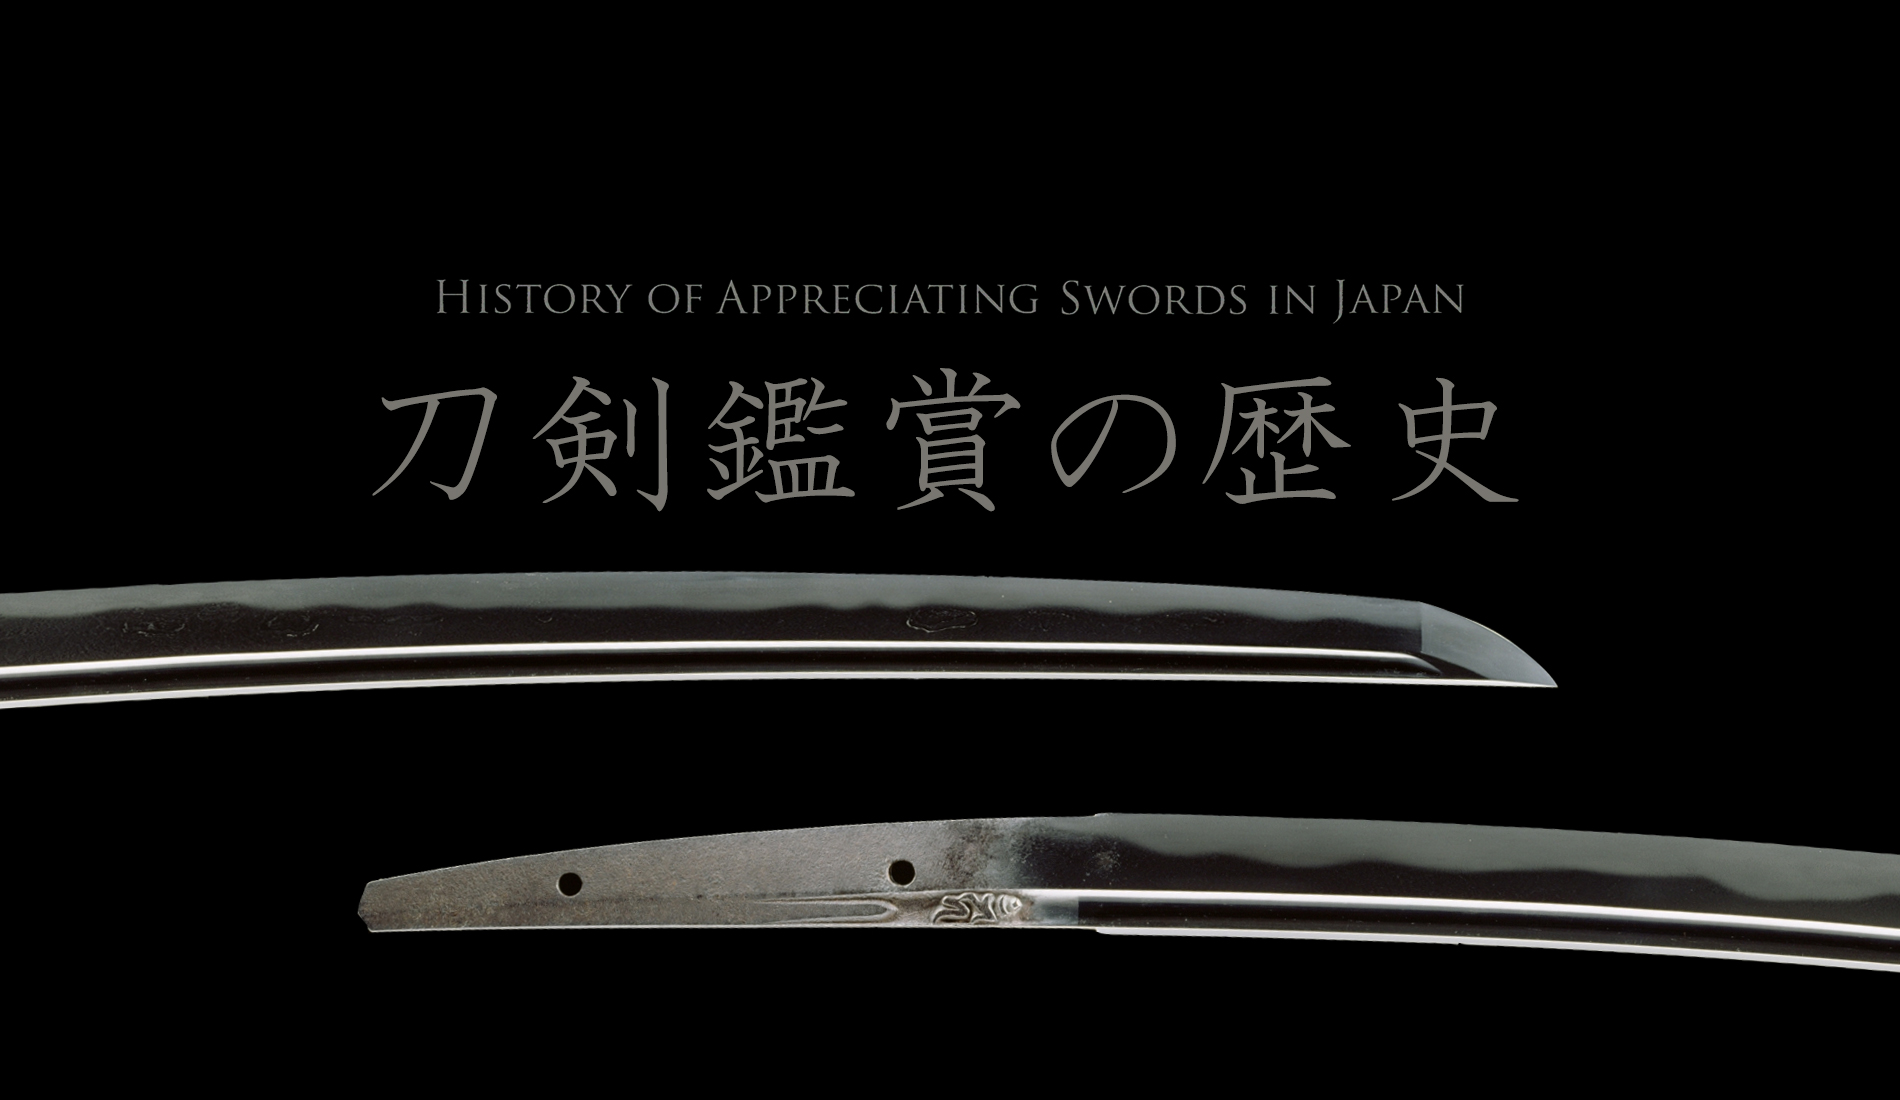 The History of Appreciating Swords in Japan